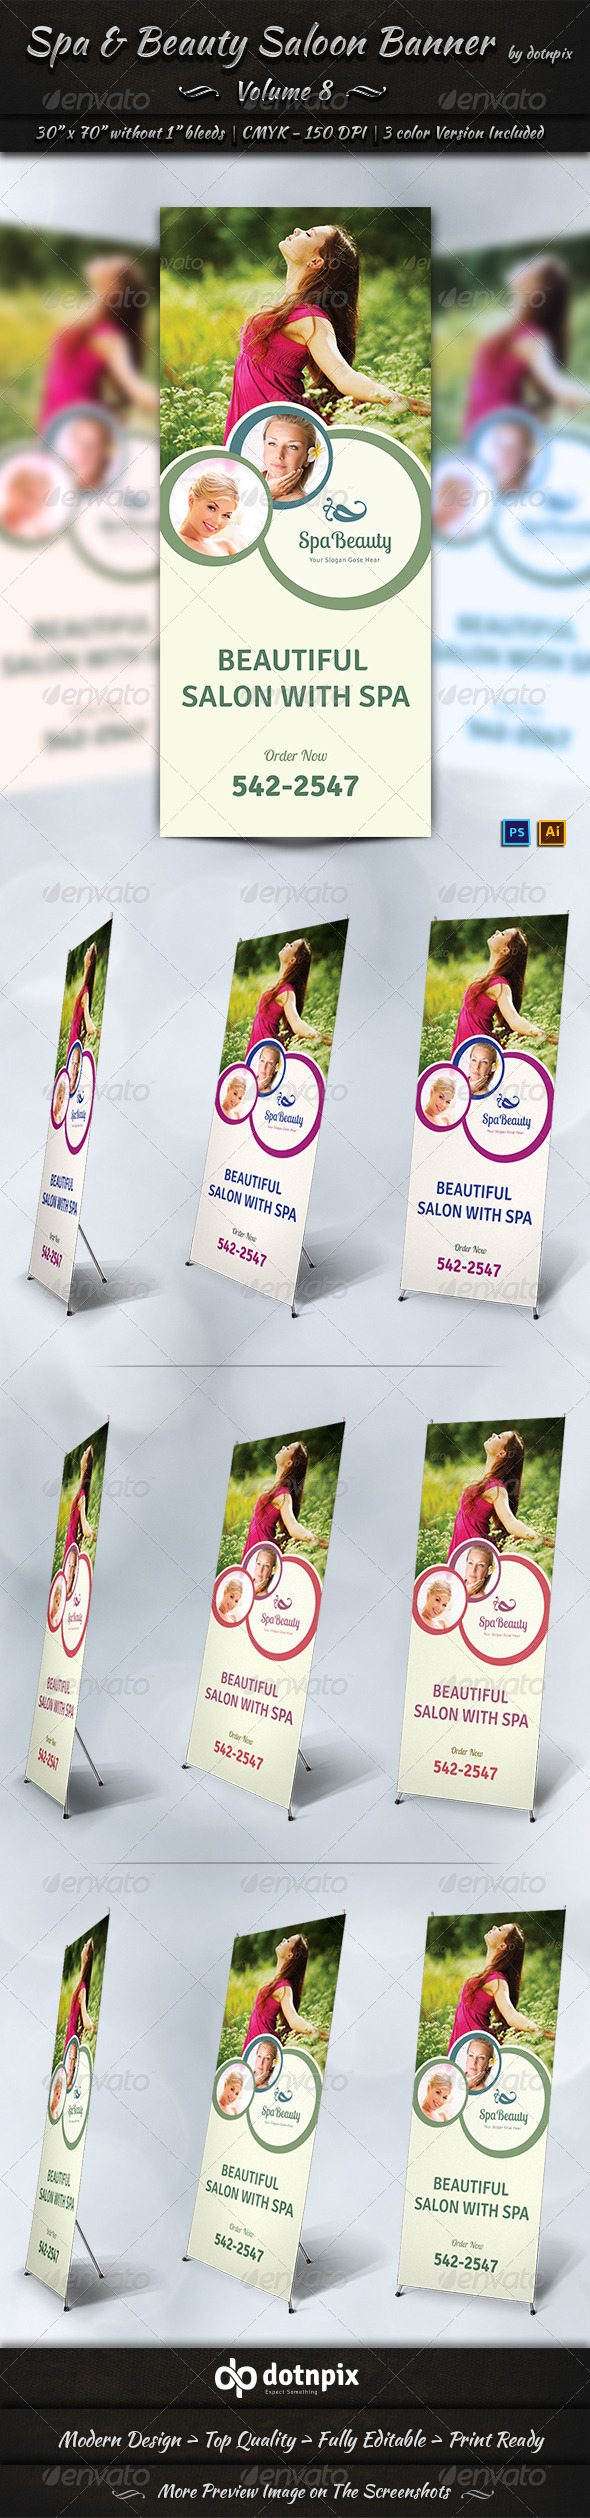 GraphicRiver Spa & Beauty Saloon Business Banner Volume 8 7888077